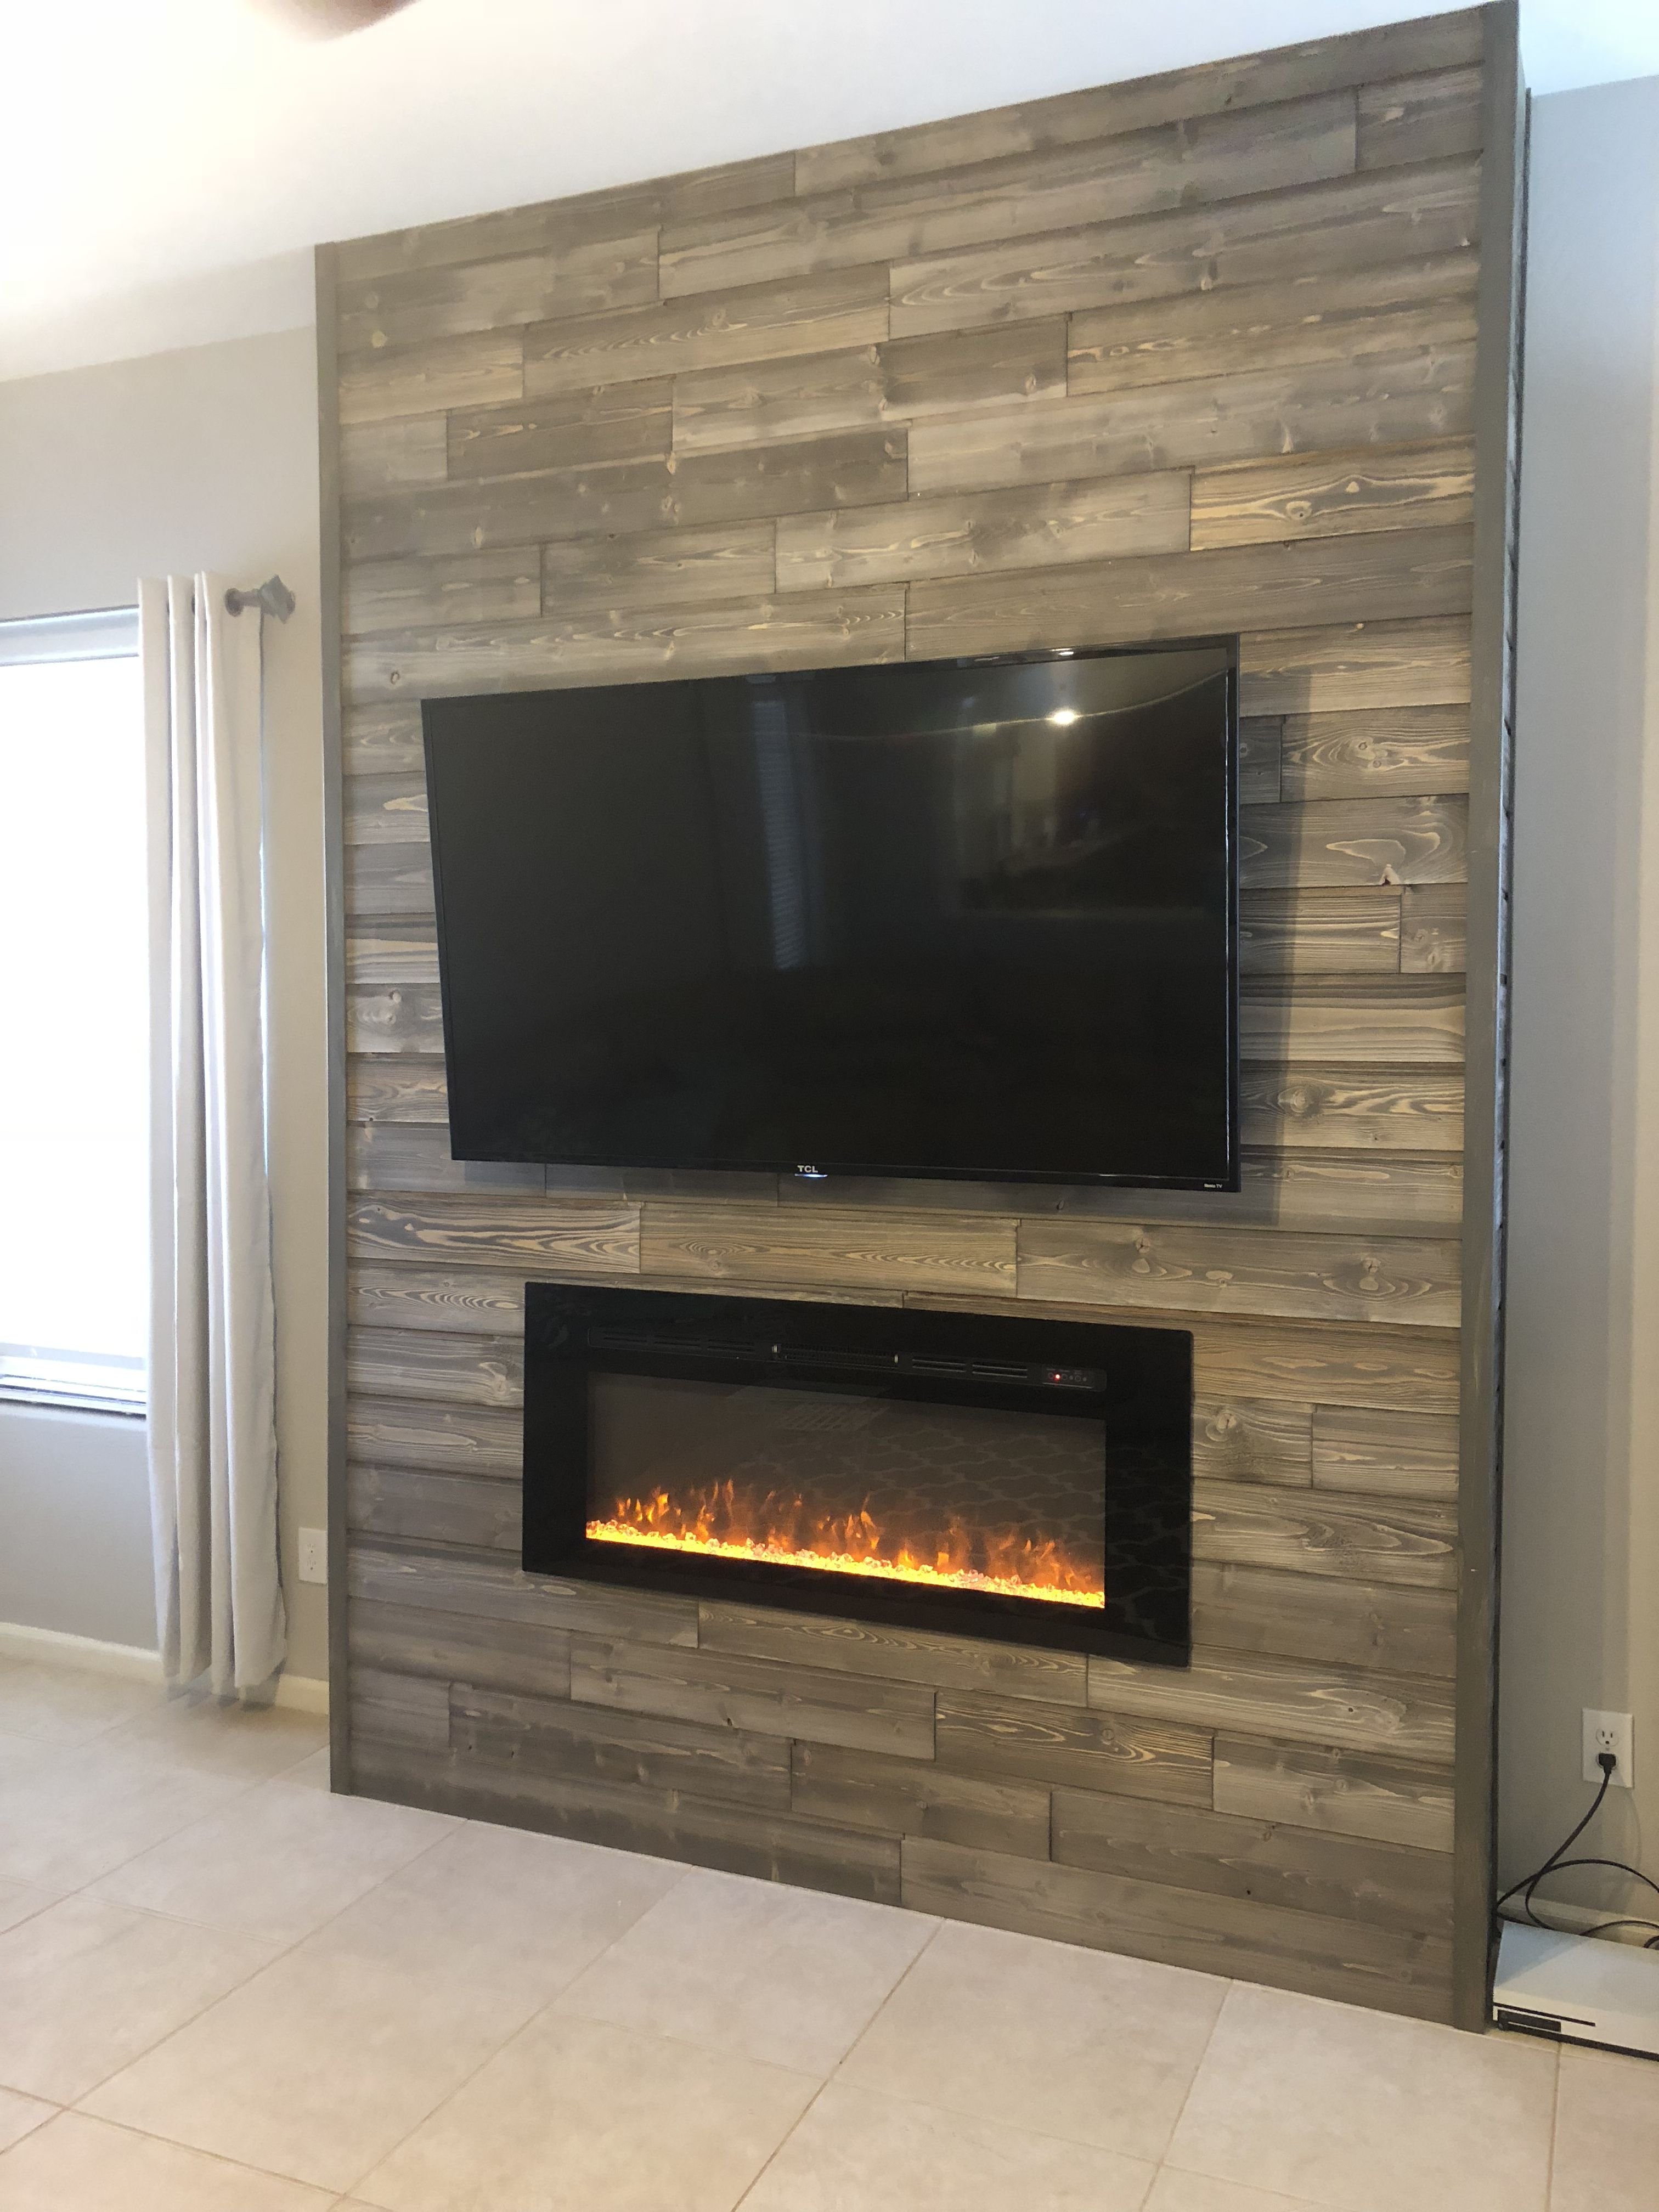 Rustic Fireplace Design Create Just The Mood You Need Fireplace